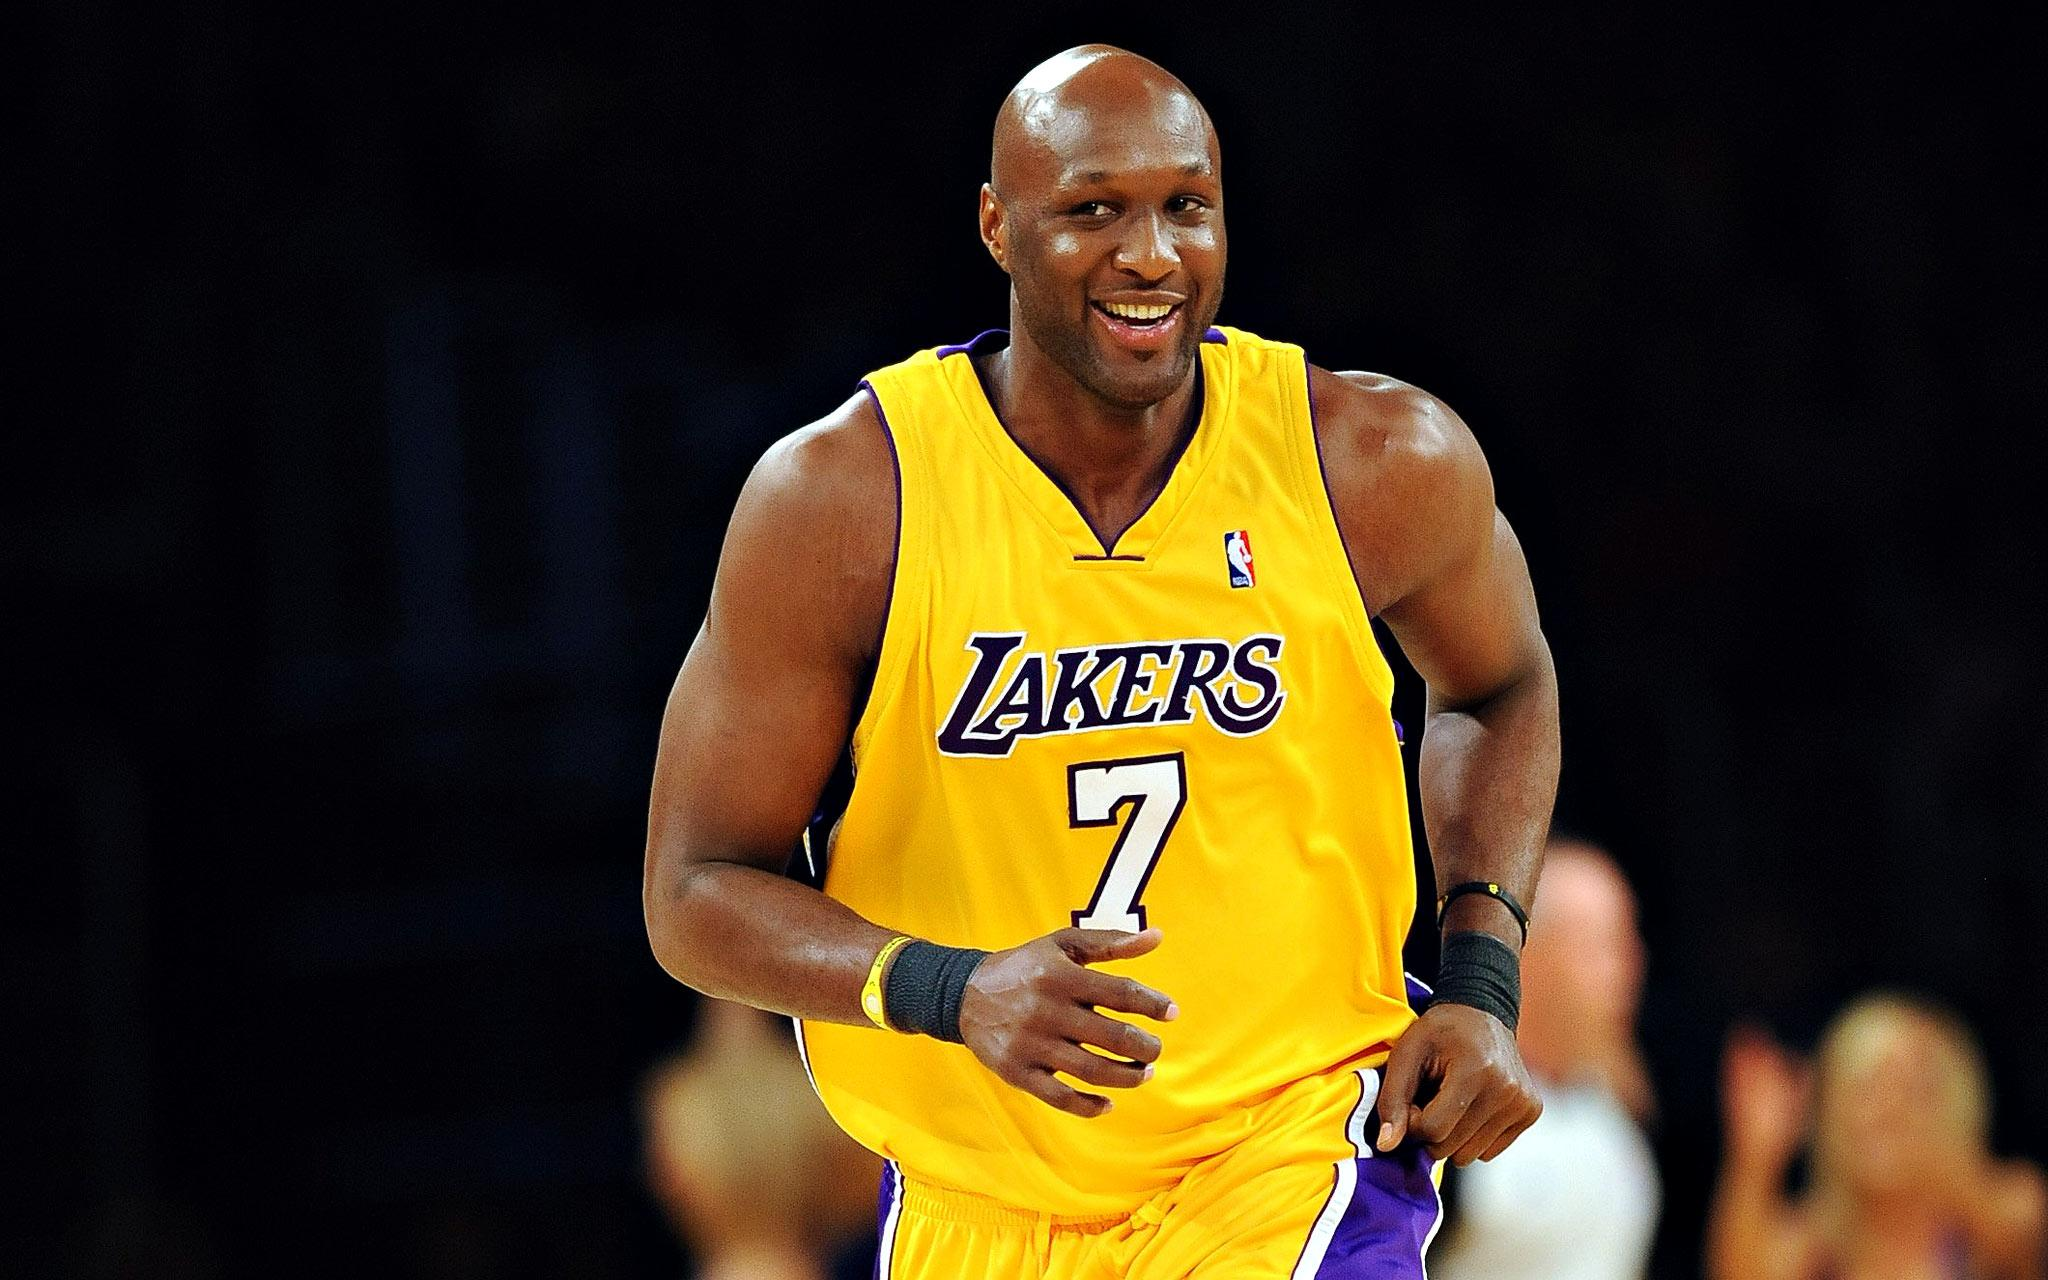 Source: espncdn.com Captions: Former NBA player, Lamar Odom recovers in Los Angeles surrounded by family.